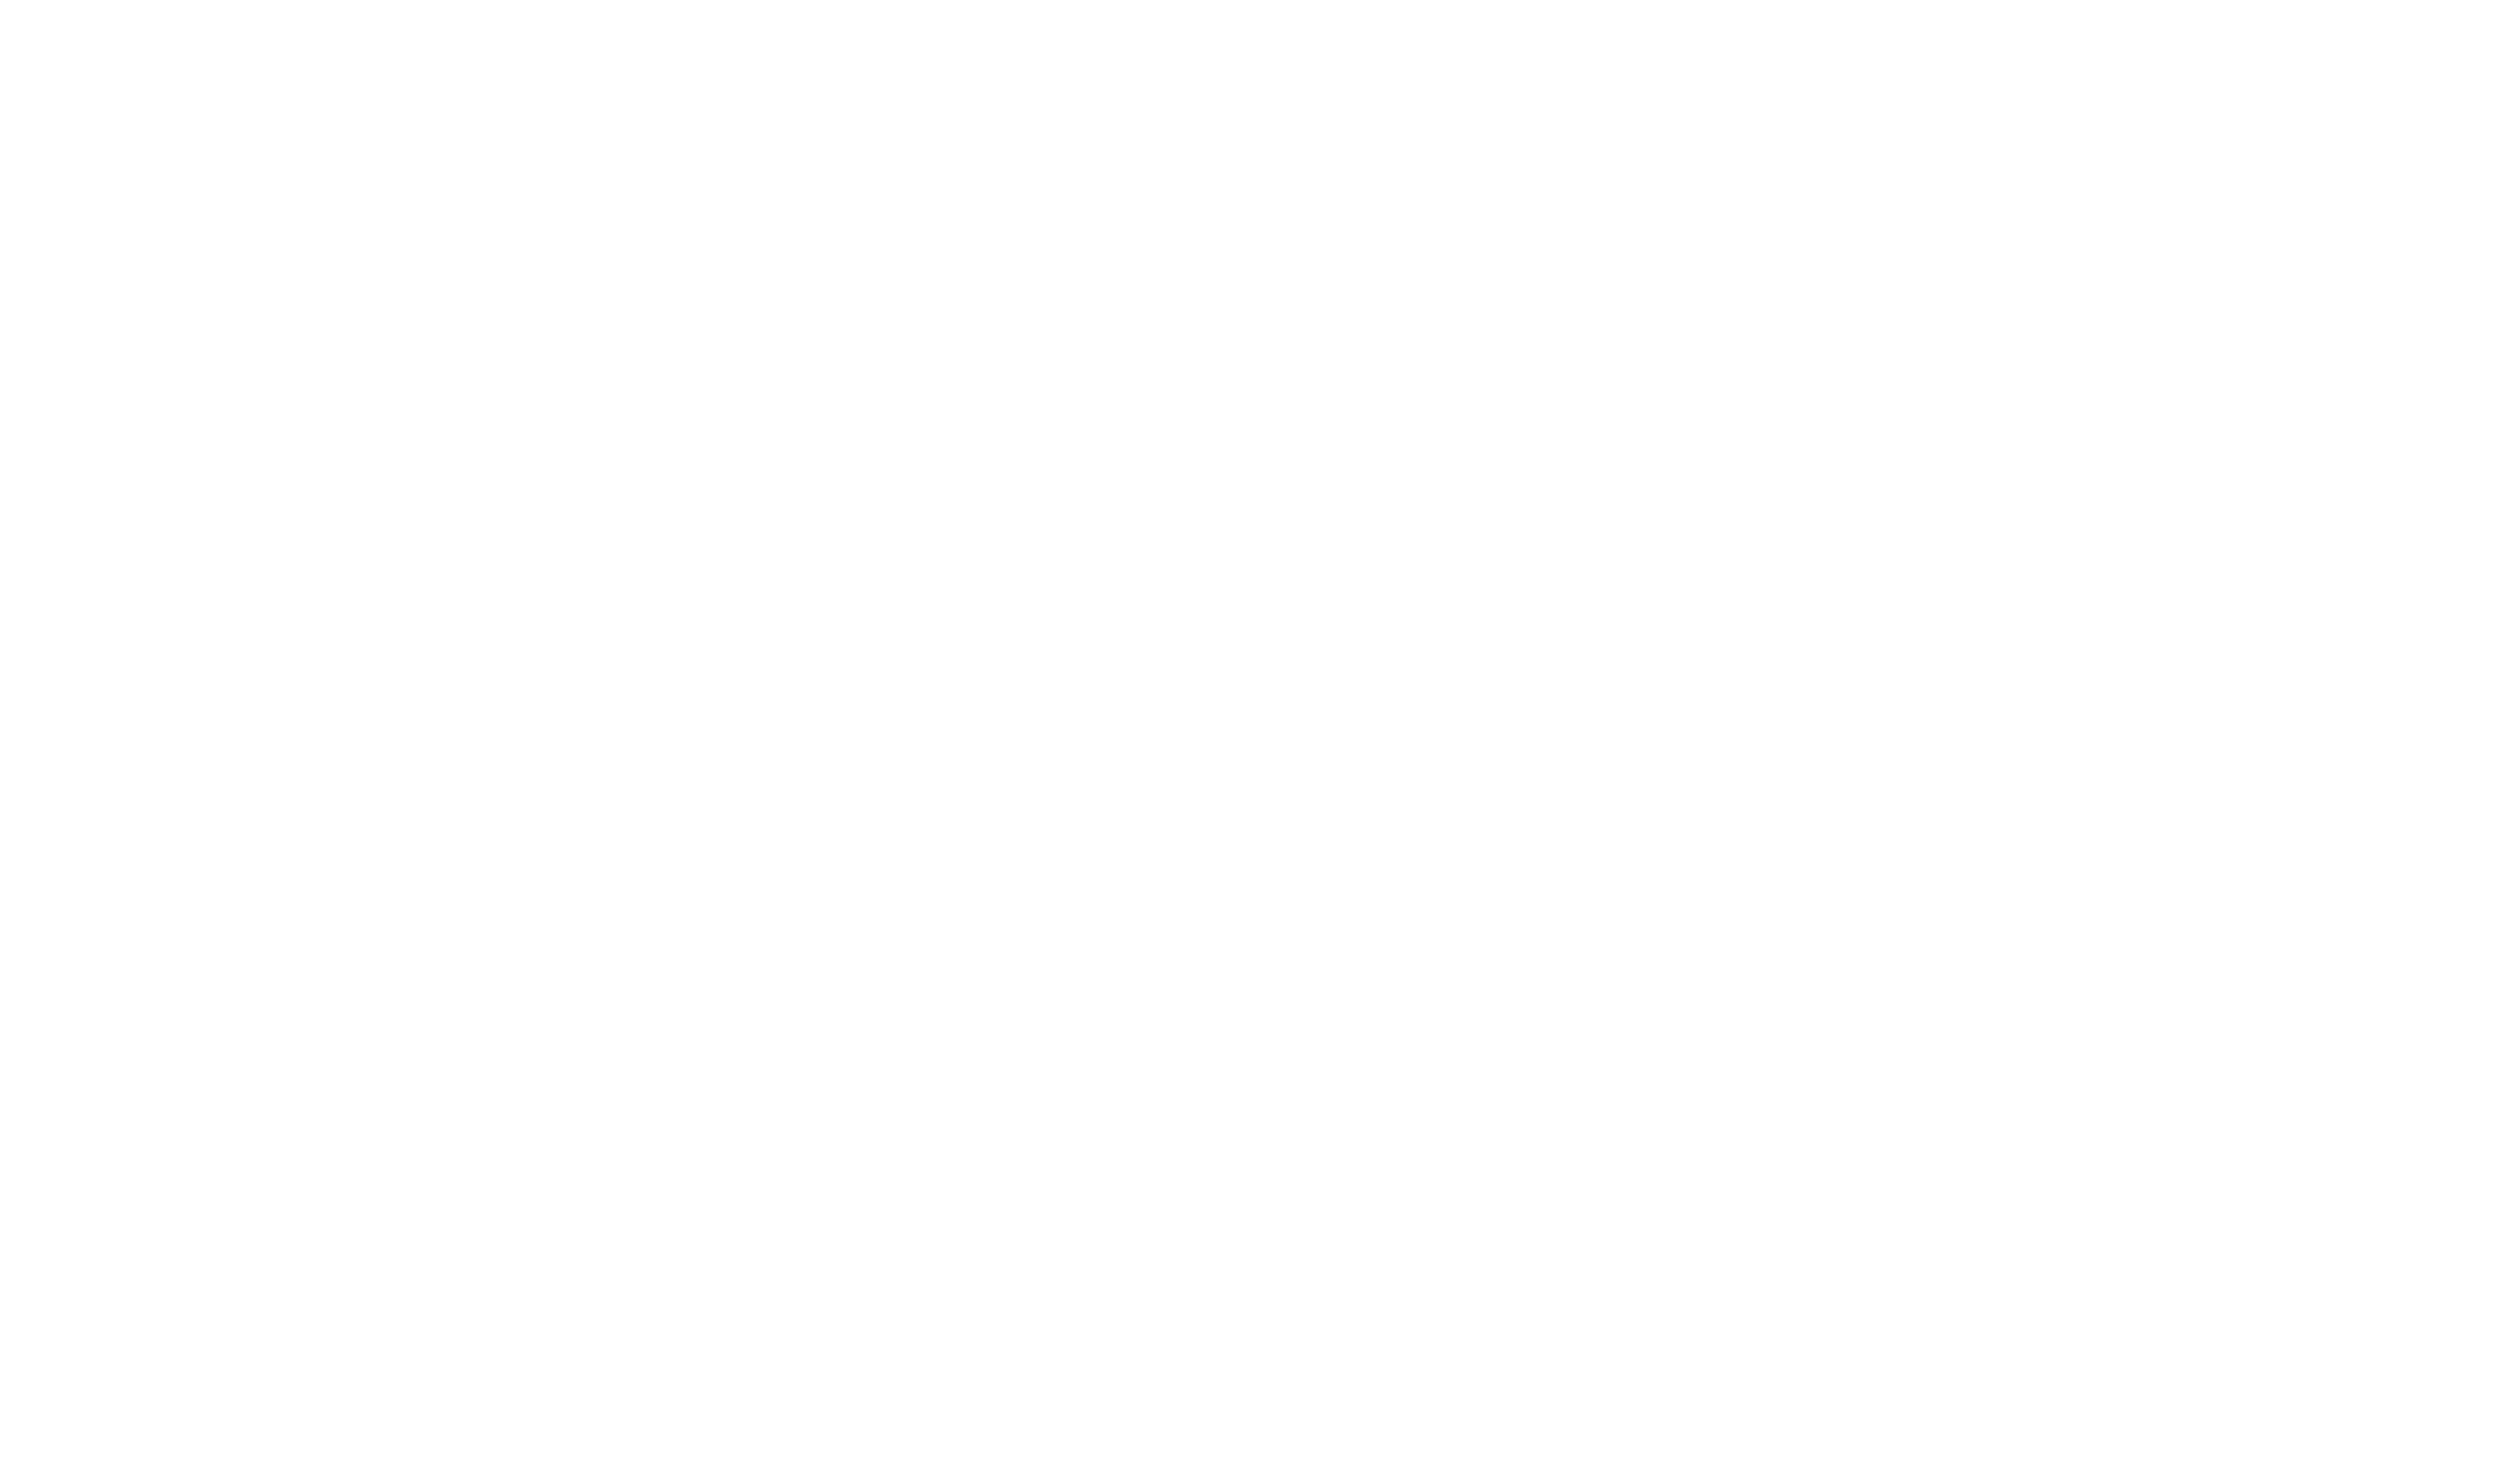 lopolopo-logo-pineapple-white.png